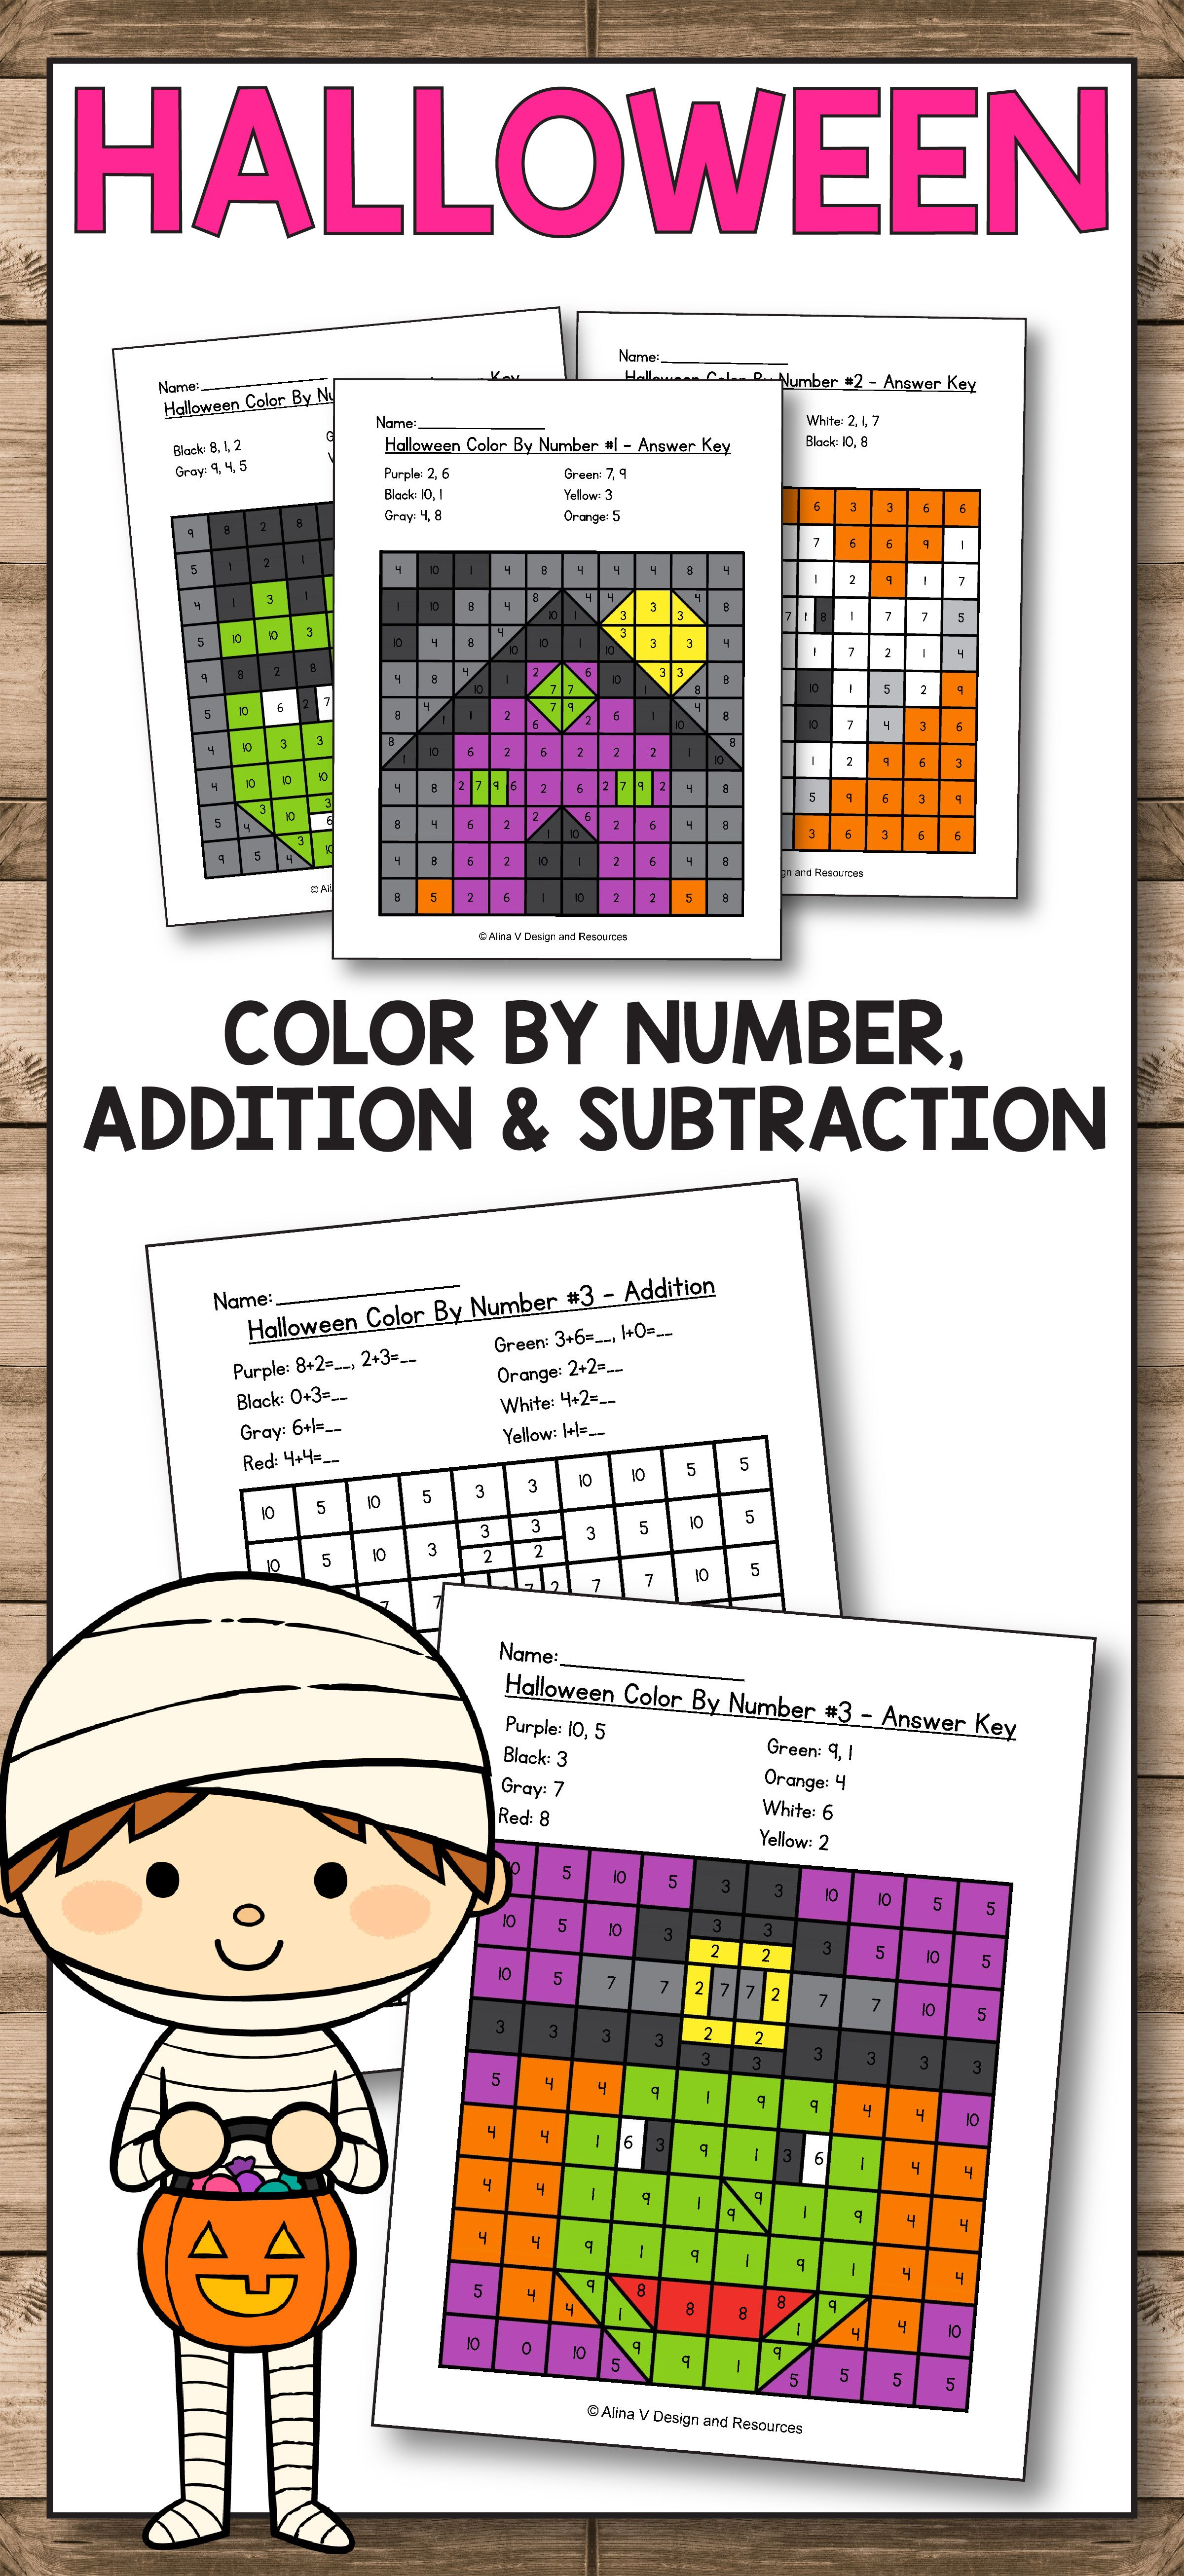 medium resolution of Halloween Color By Number - Halloween Math Worksheets   Halloween math  worksheets